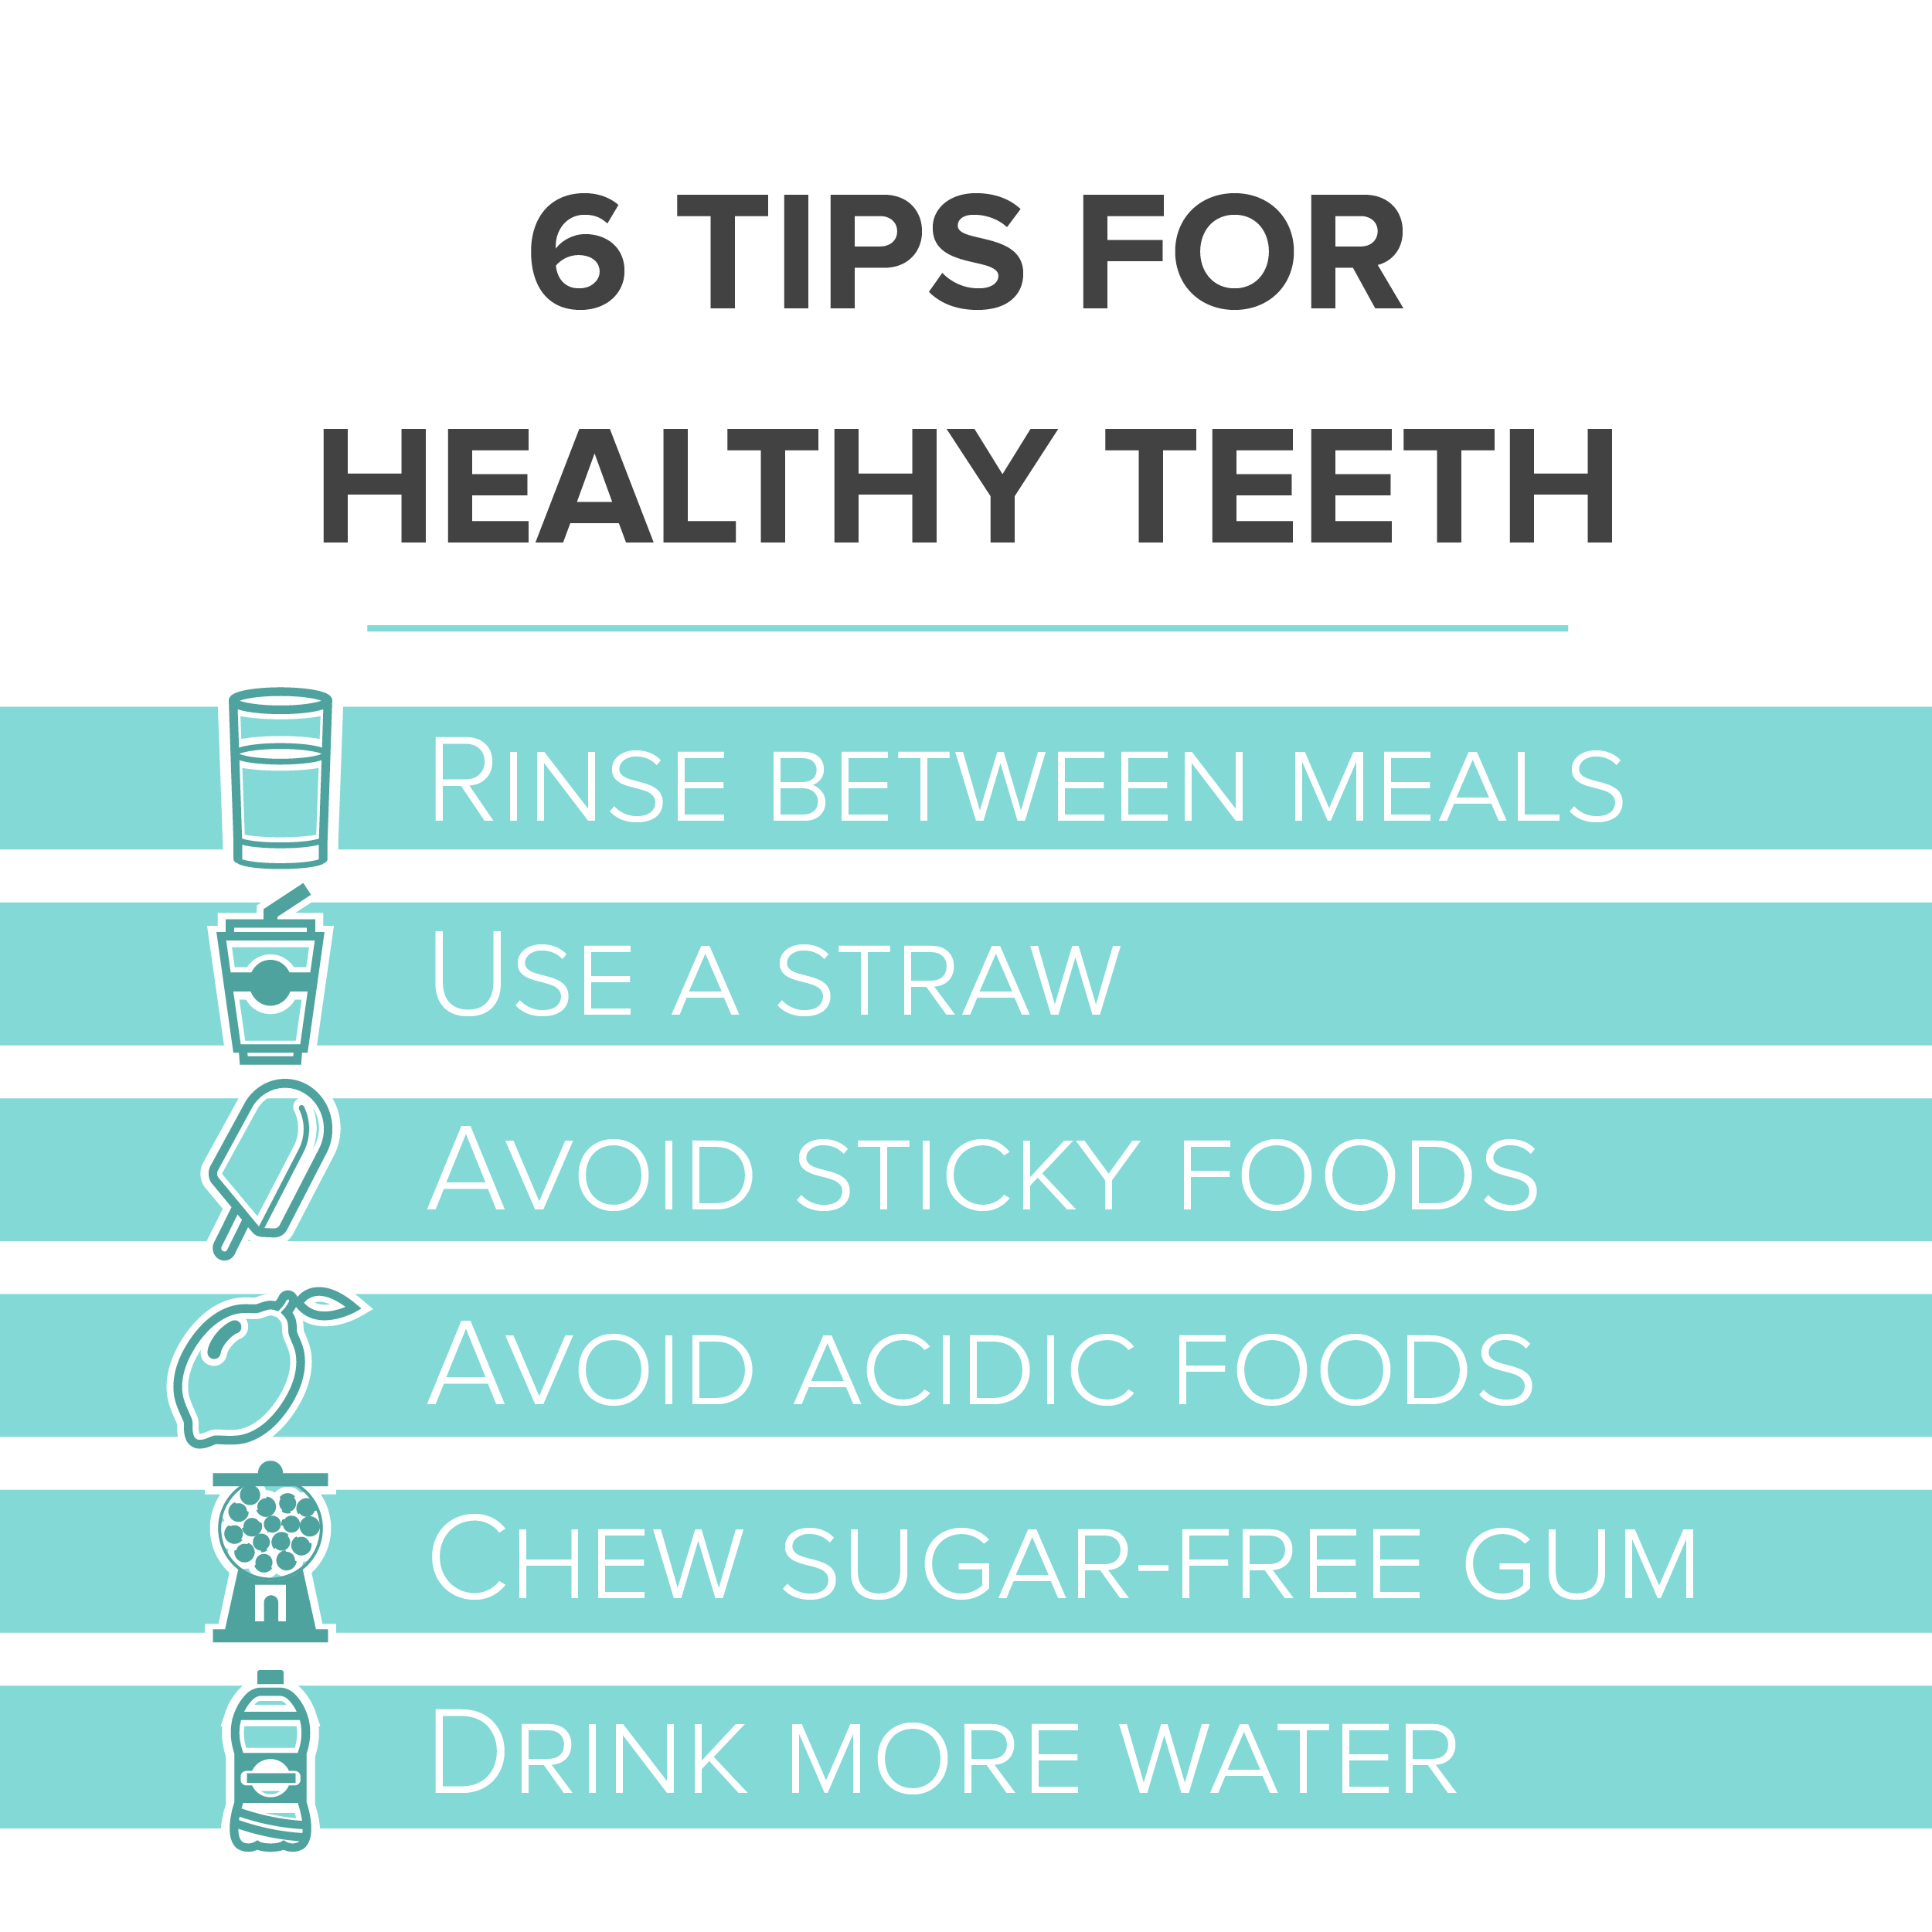 6 Simple Ways To Keep Your Teeth Where They Belong – In Your Mouth!